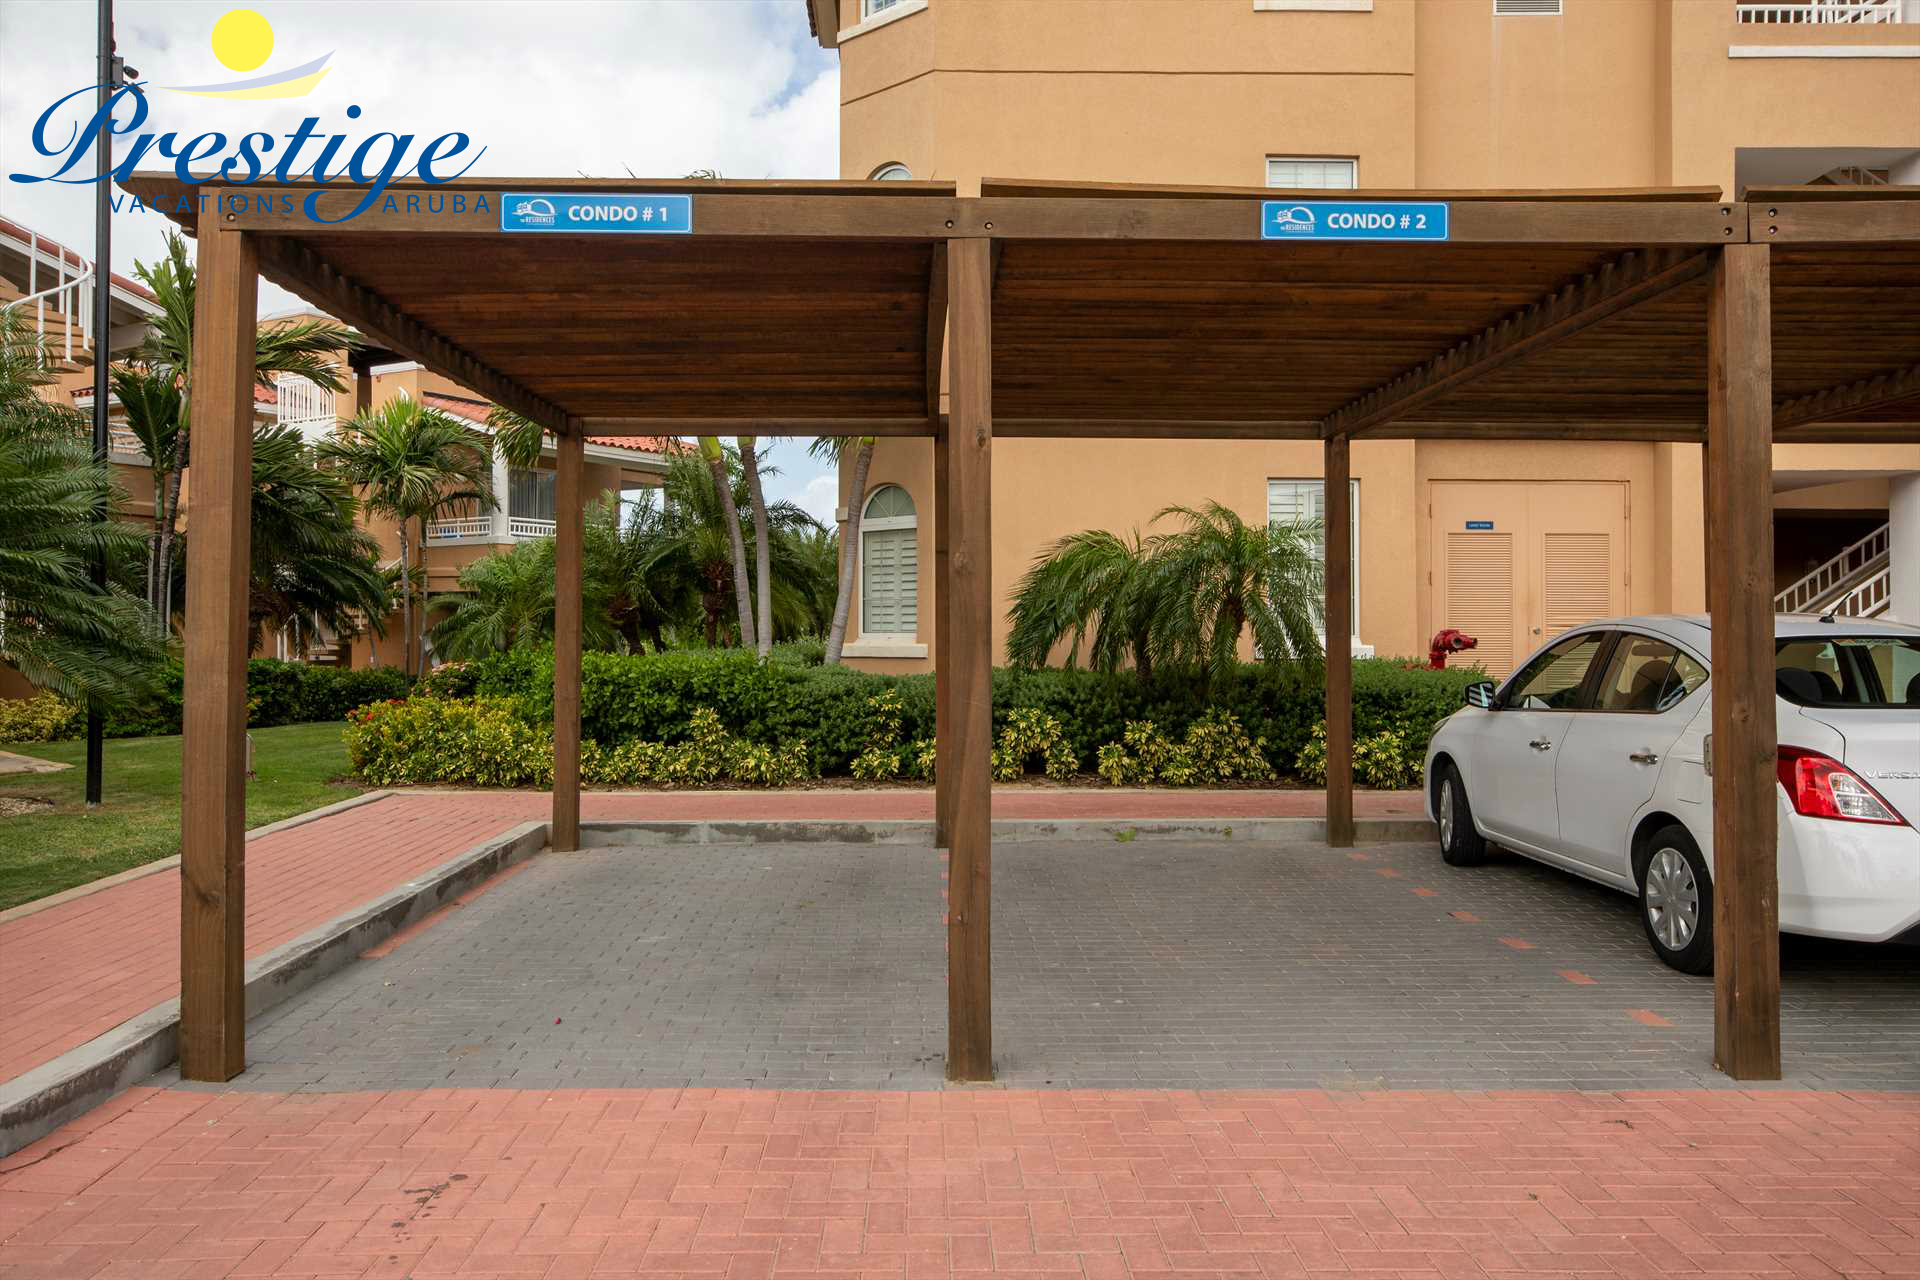 Your designated parking space in front of the building, numbered: Condo 2